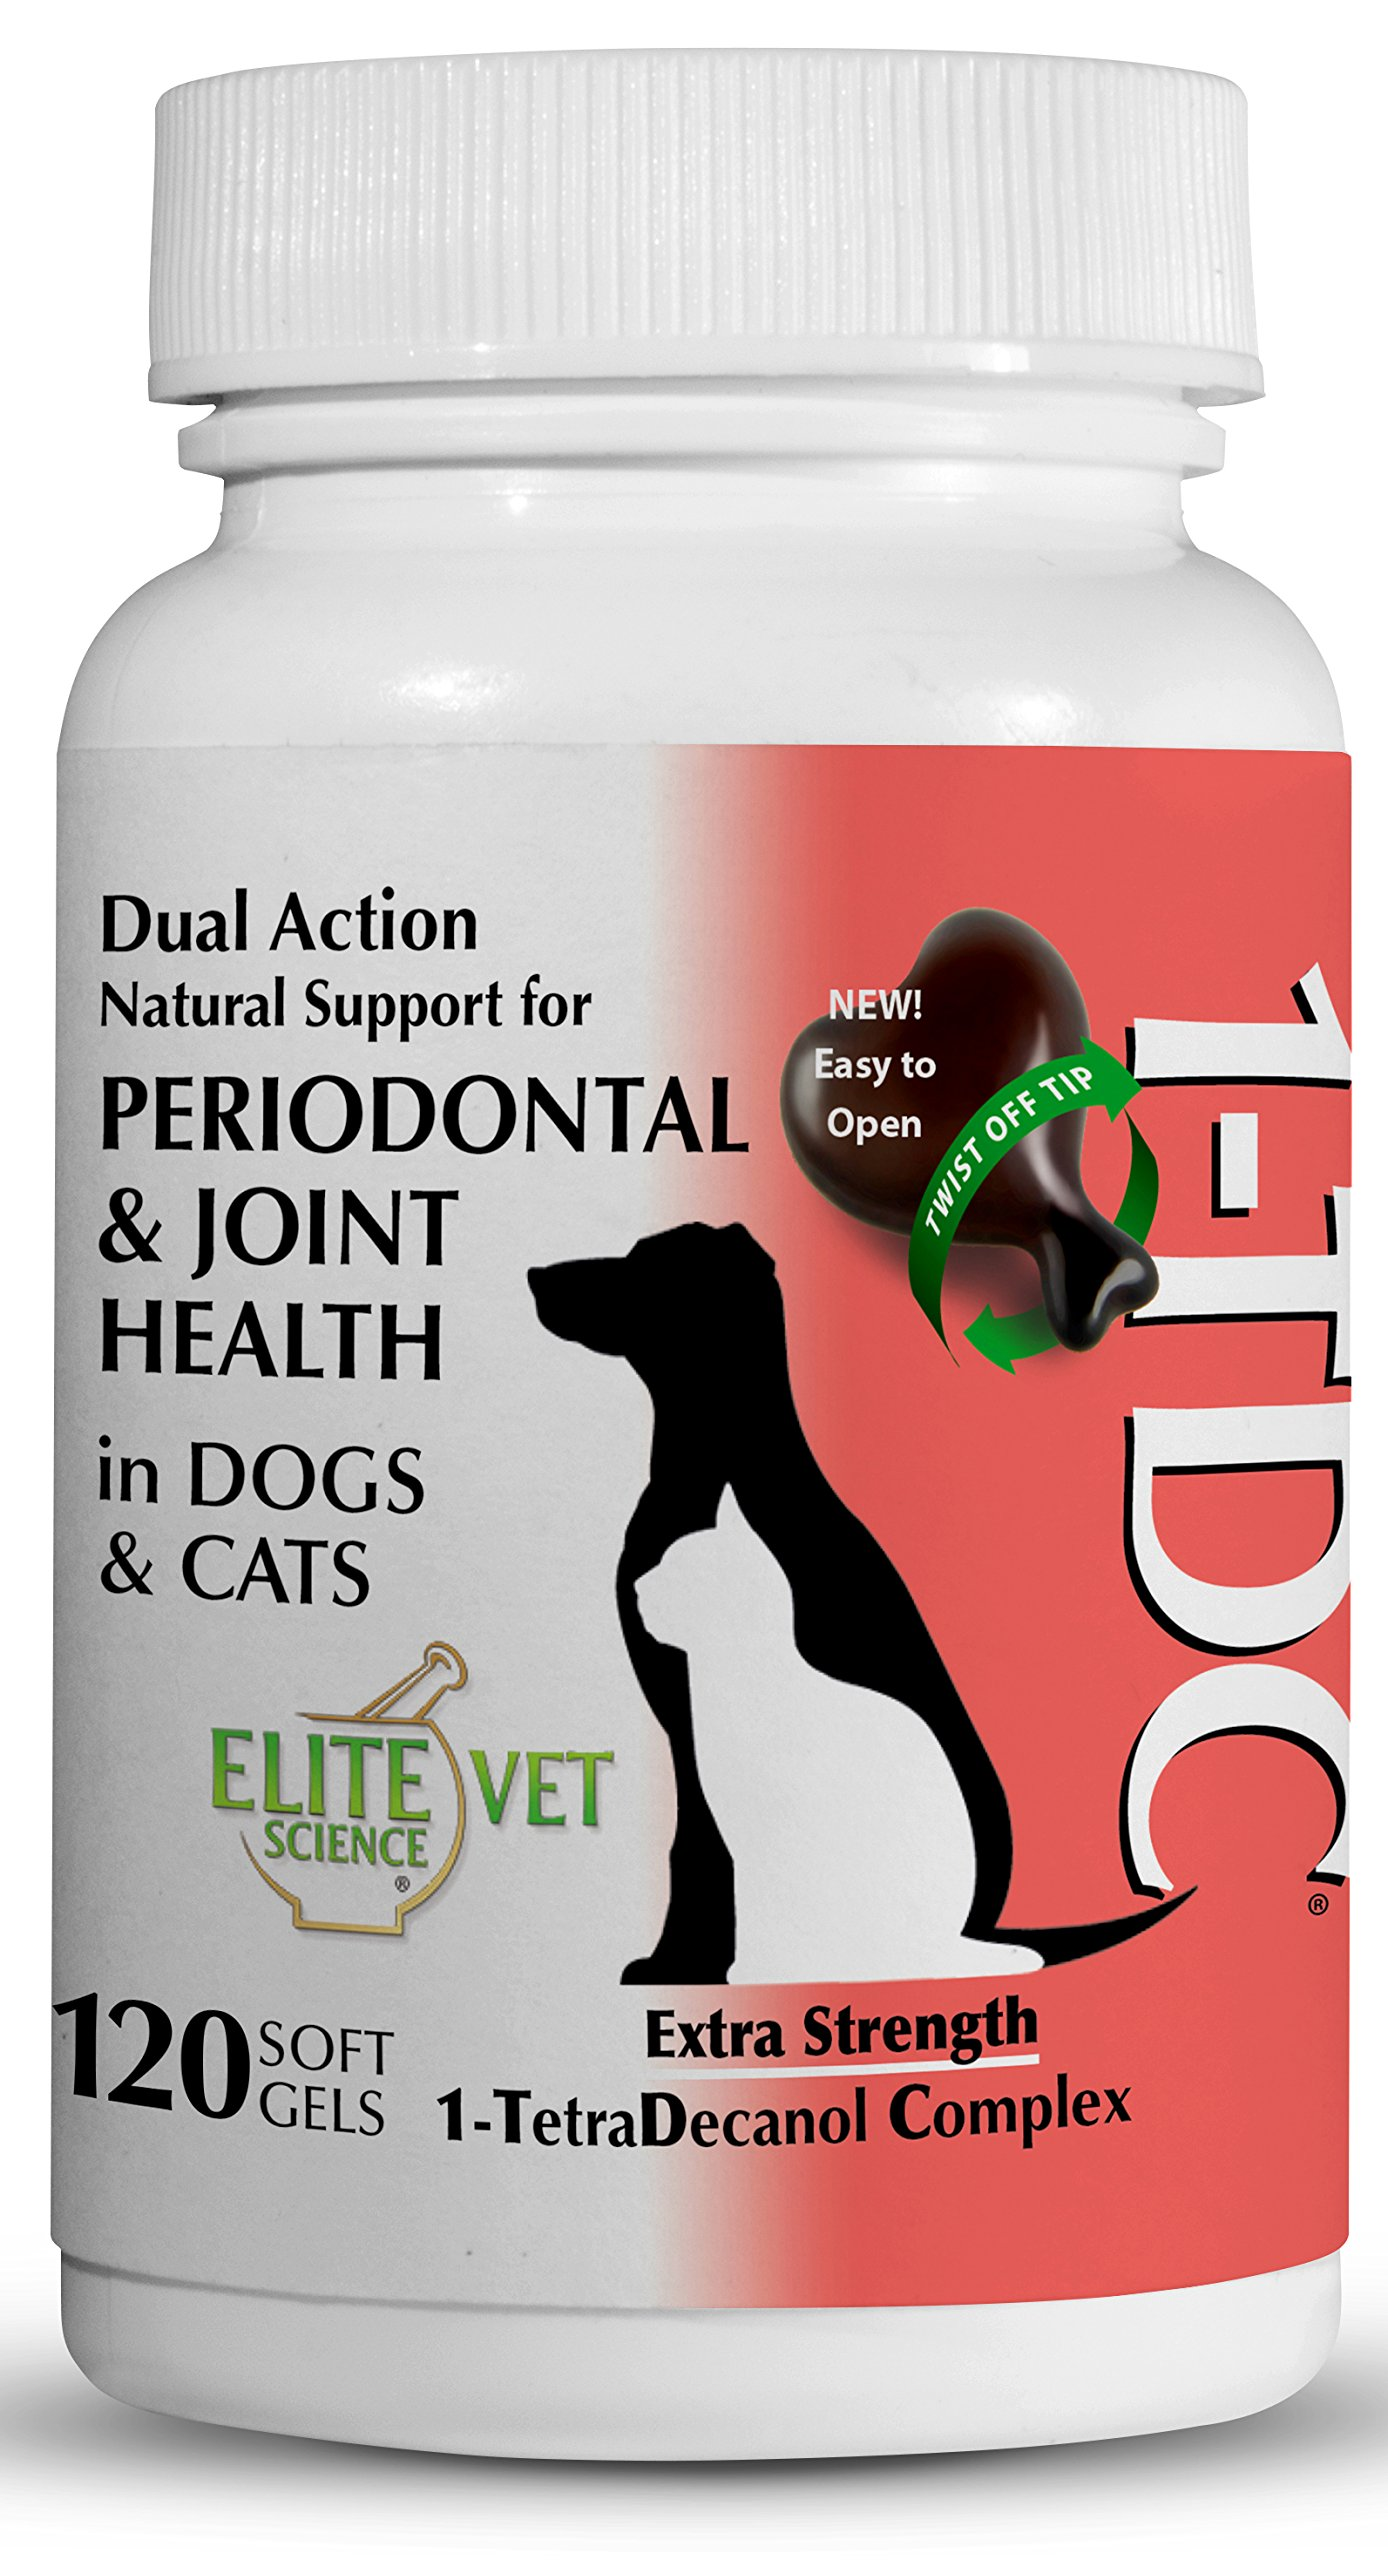 1TDC Dual Action Natural Support – 120 Twist Off Soft Gels | Delivers 4 Major Health Benefits for Dogs & Cats | Supports Oral Health, Hip & Joint Health, Muscle & Stamina Recovery, Skin & Coat Health